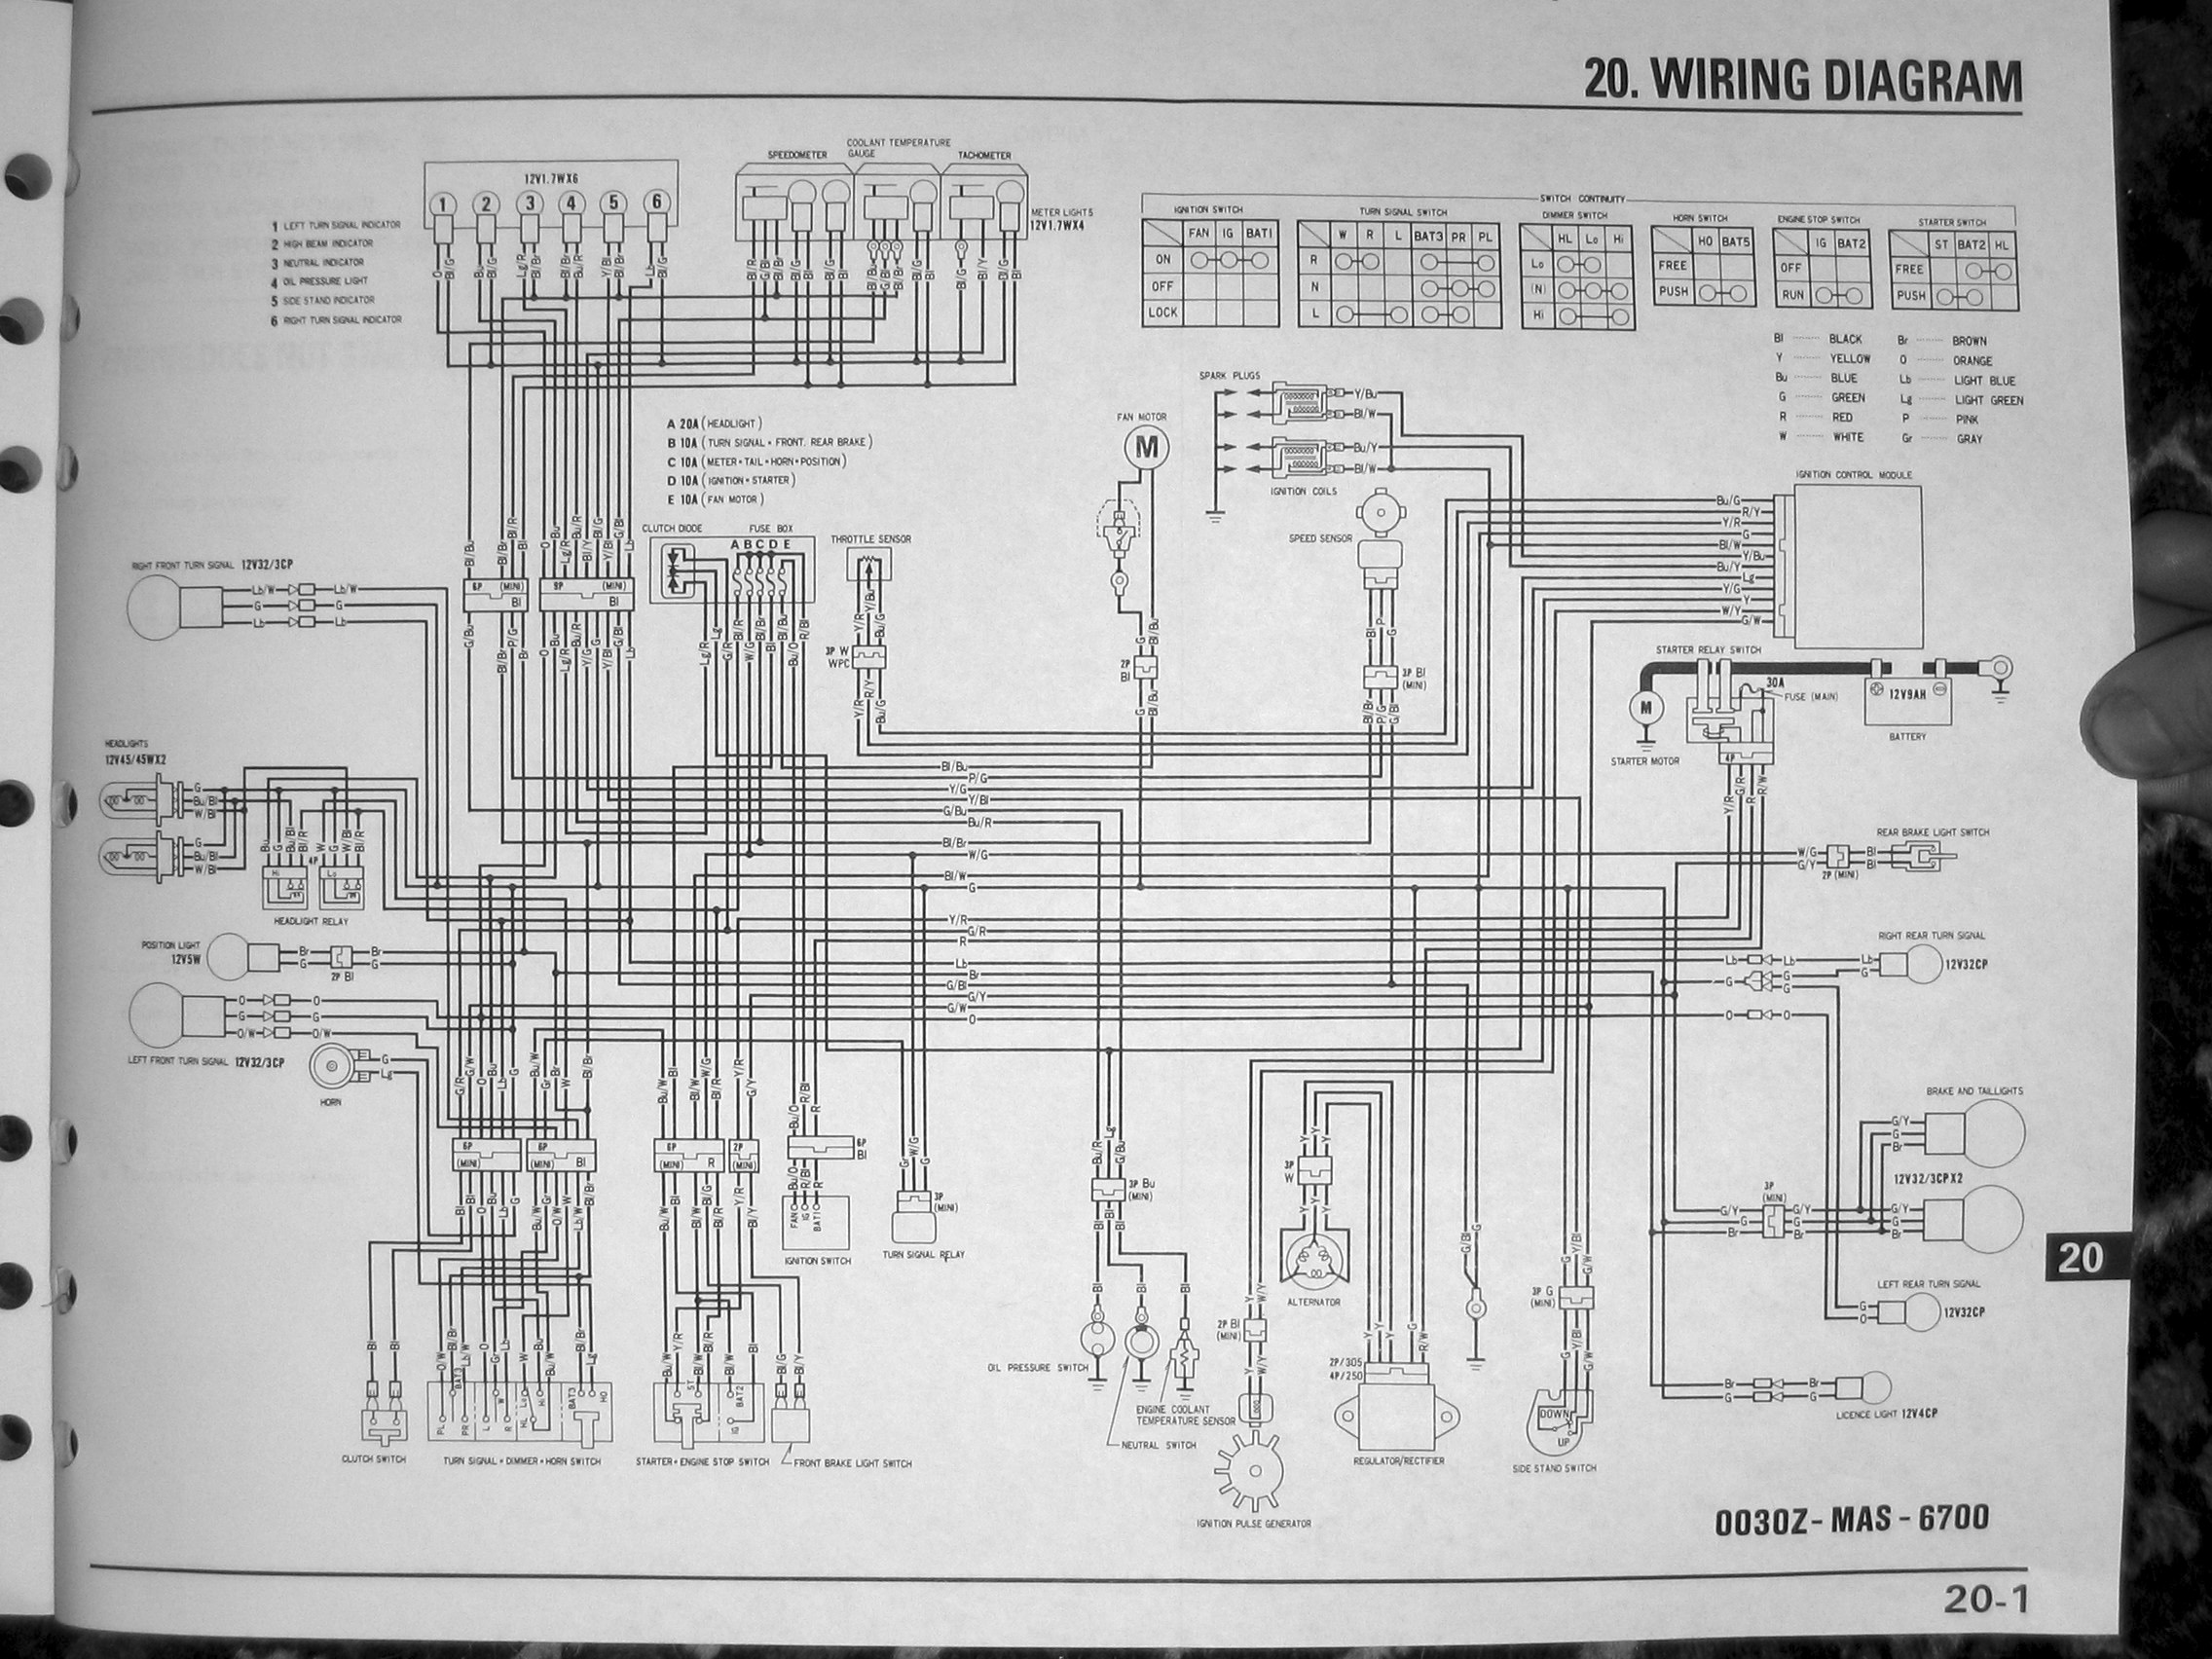 suzuki gsx 750 f wiring diagram for 1985 chevy truck 2006 gsx600f library